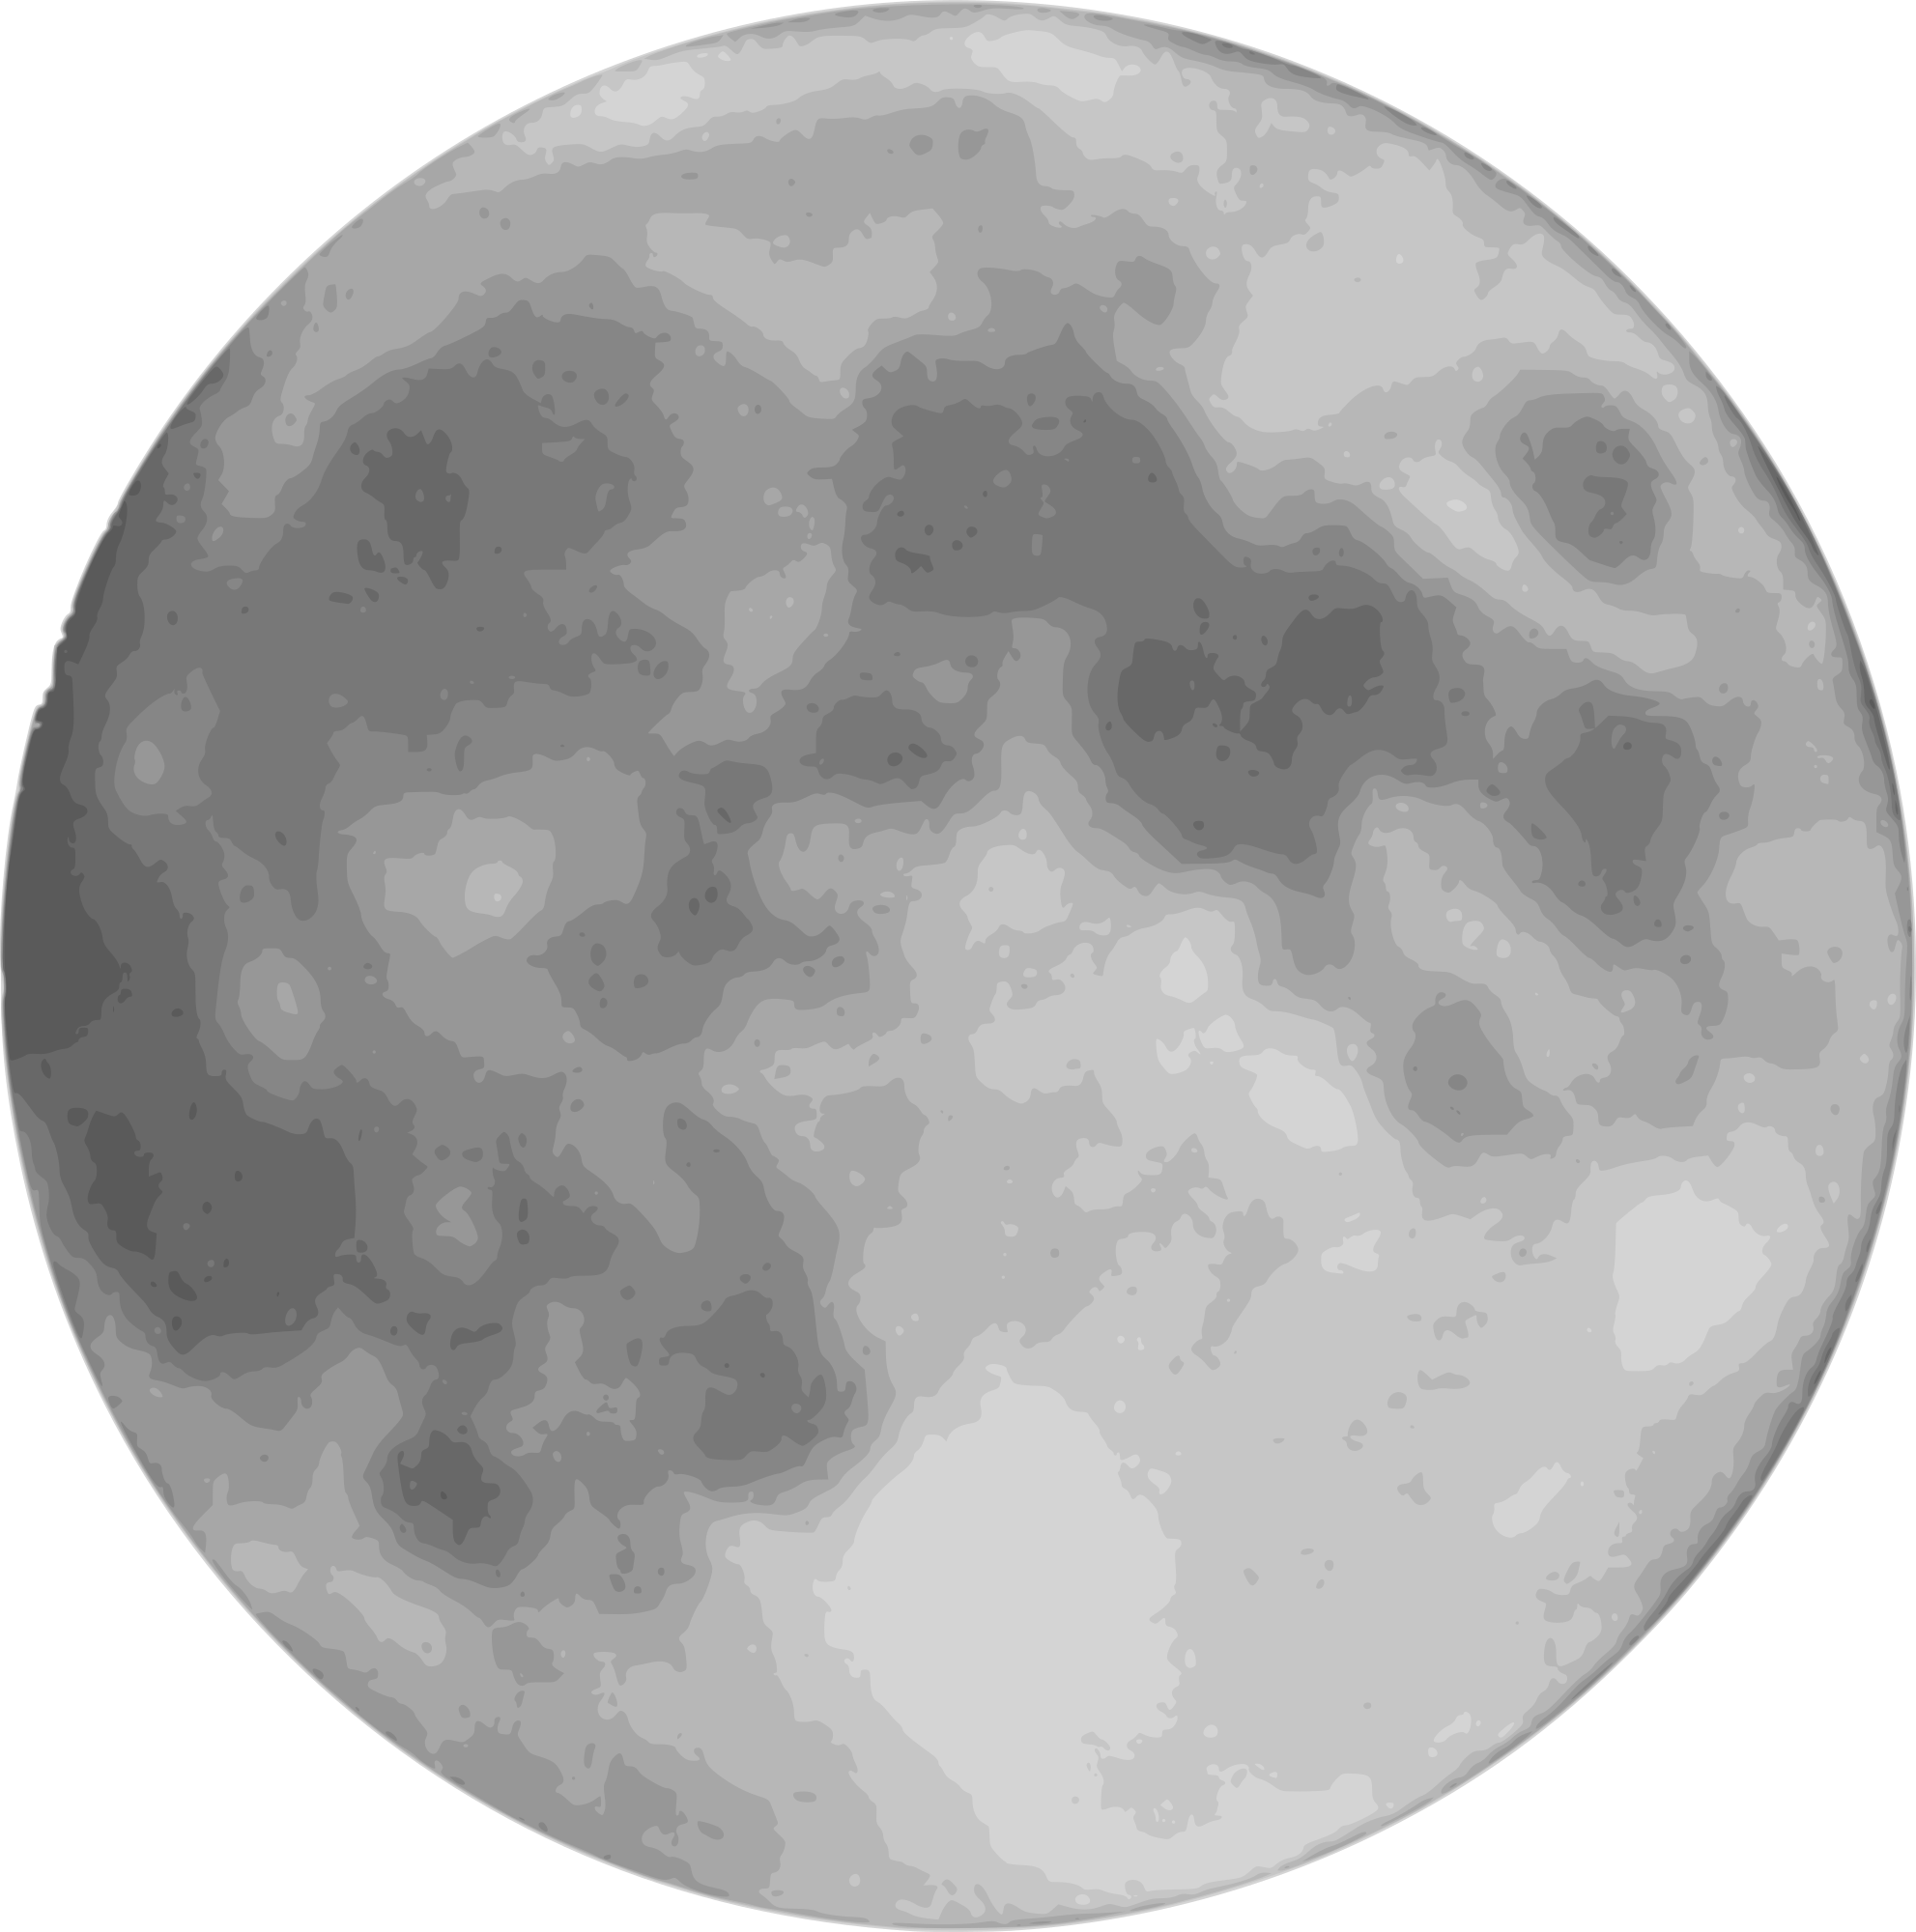 Full Moon Clipart png free, Full Moon transparent png